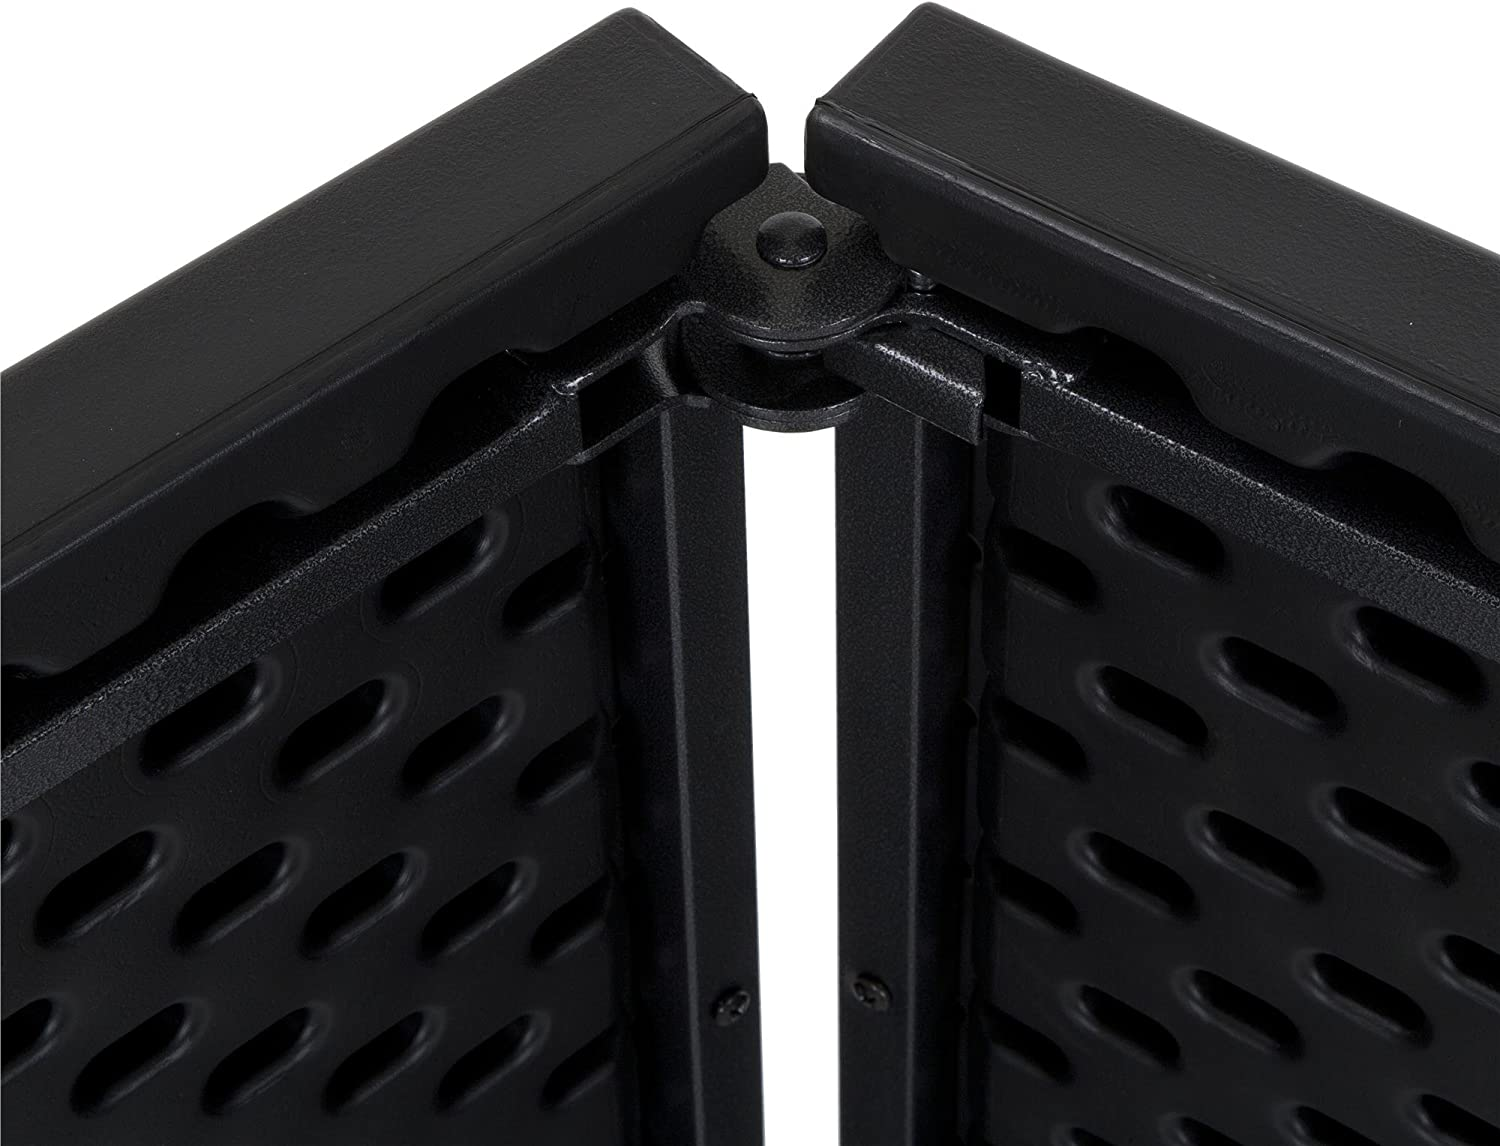 2 Pack Cosco Deluxe 6 Foot x 30 inch Fold-in-Half Blow Molded Folding Table Black